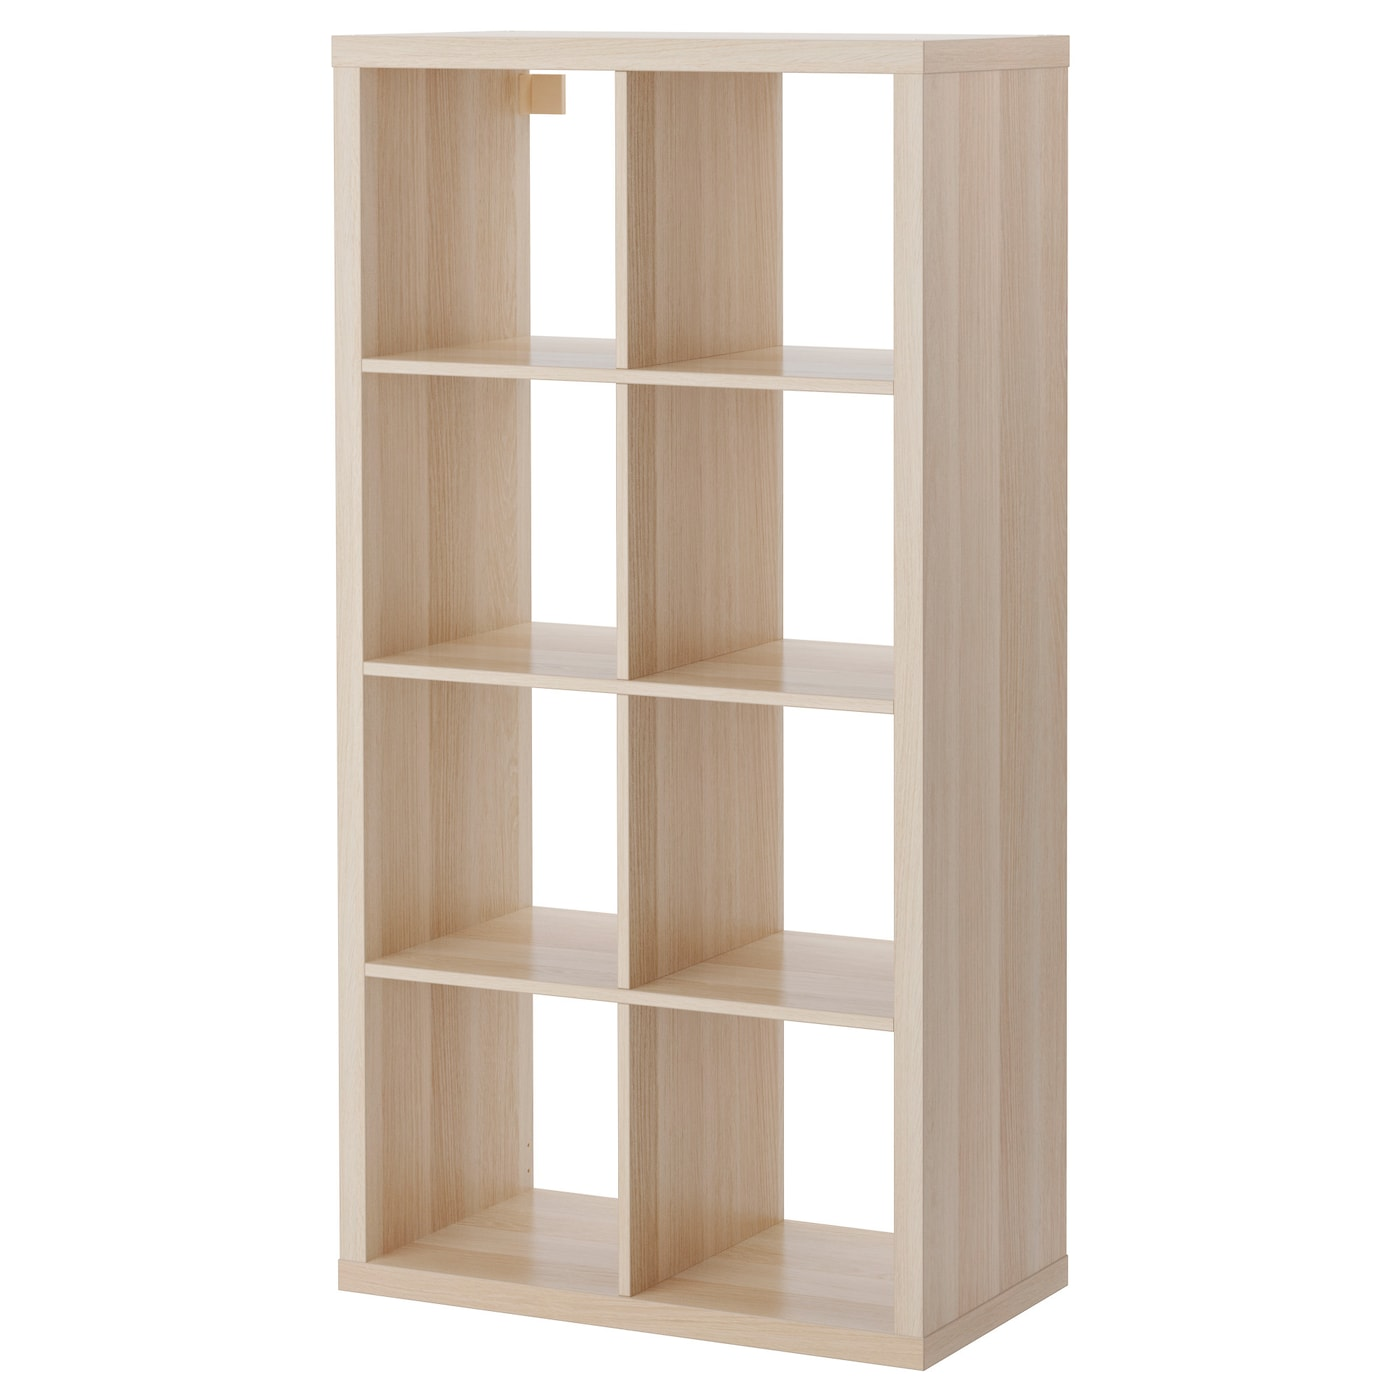 storage cubes modular shelves palaset id pieces ristomatti shelf f at furniture z case vintage ratia